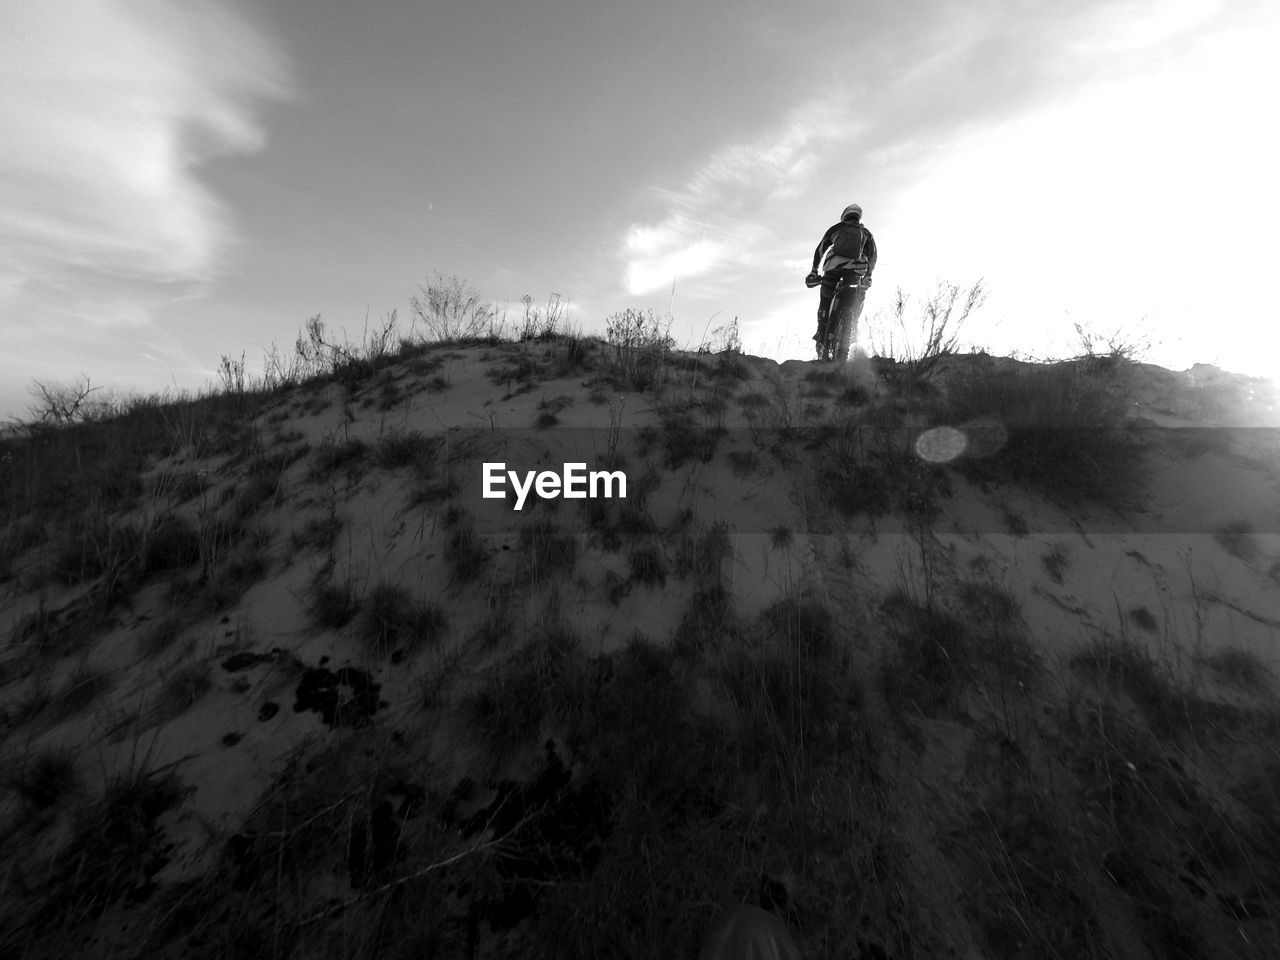 LOW ANGLE VIEW OF PERSON ON MOUNTAIN AGAINST SKY